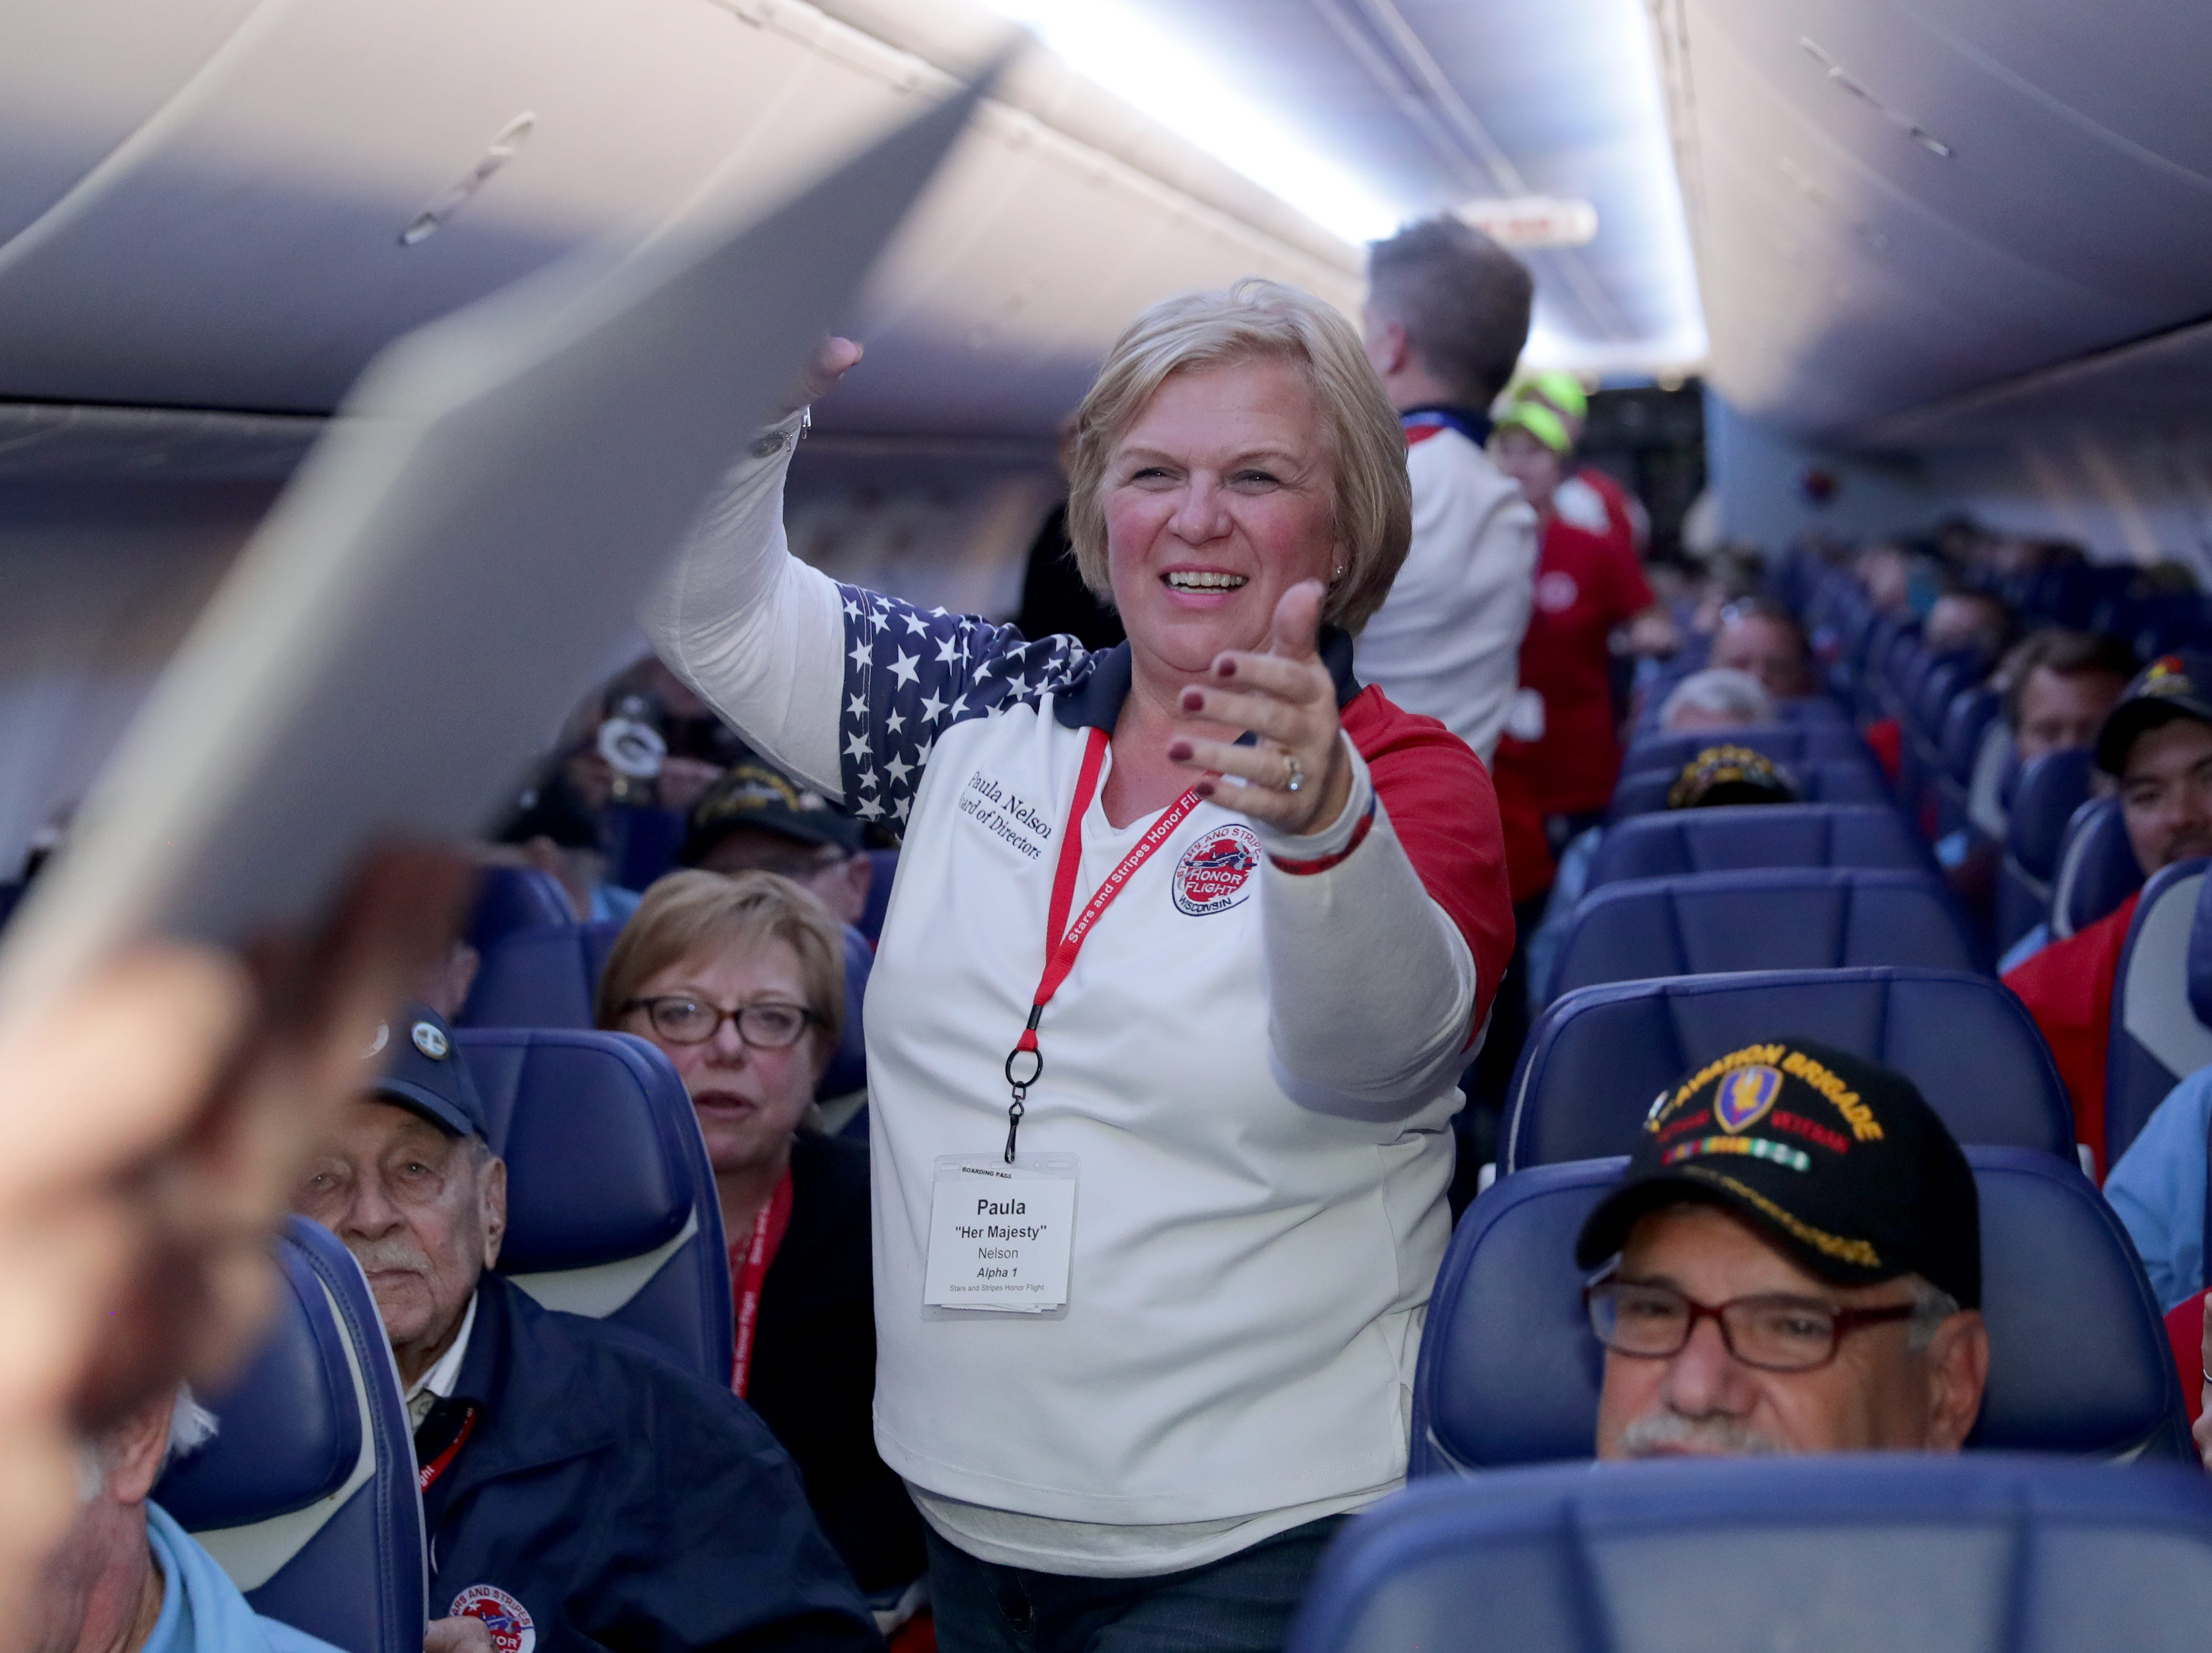 Stars and Stripes Honor Flight President Paula Nelson helps pass out mail during mail call, where veterans are surprised by dozens of letters from loved ones.